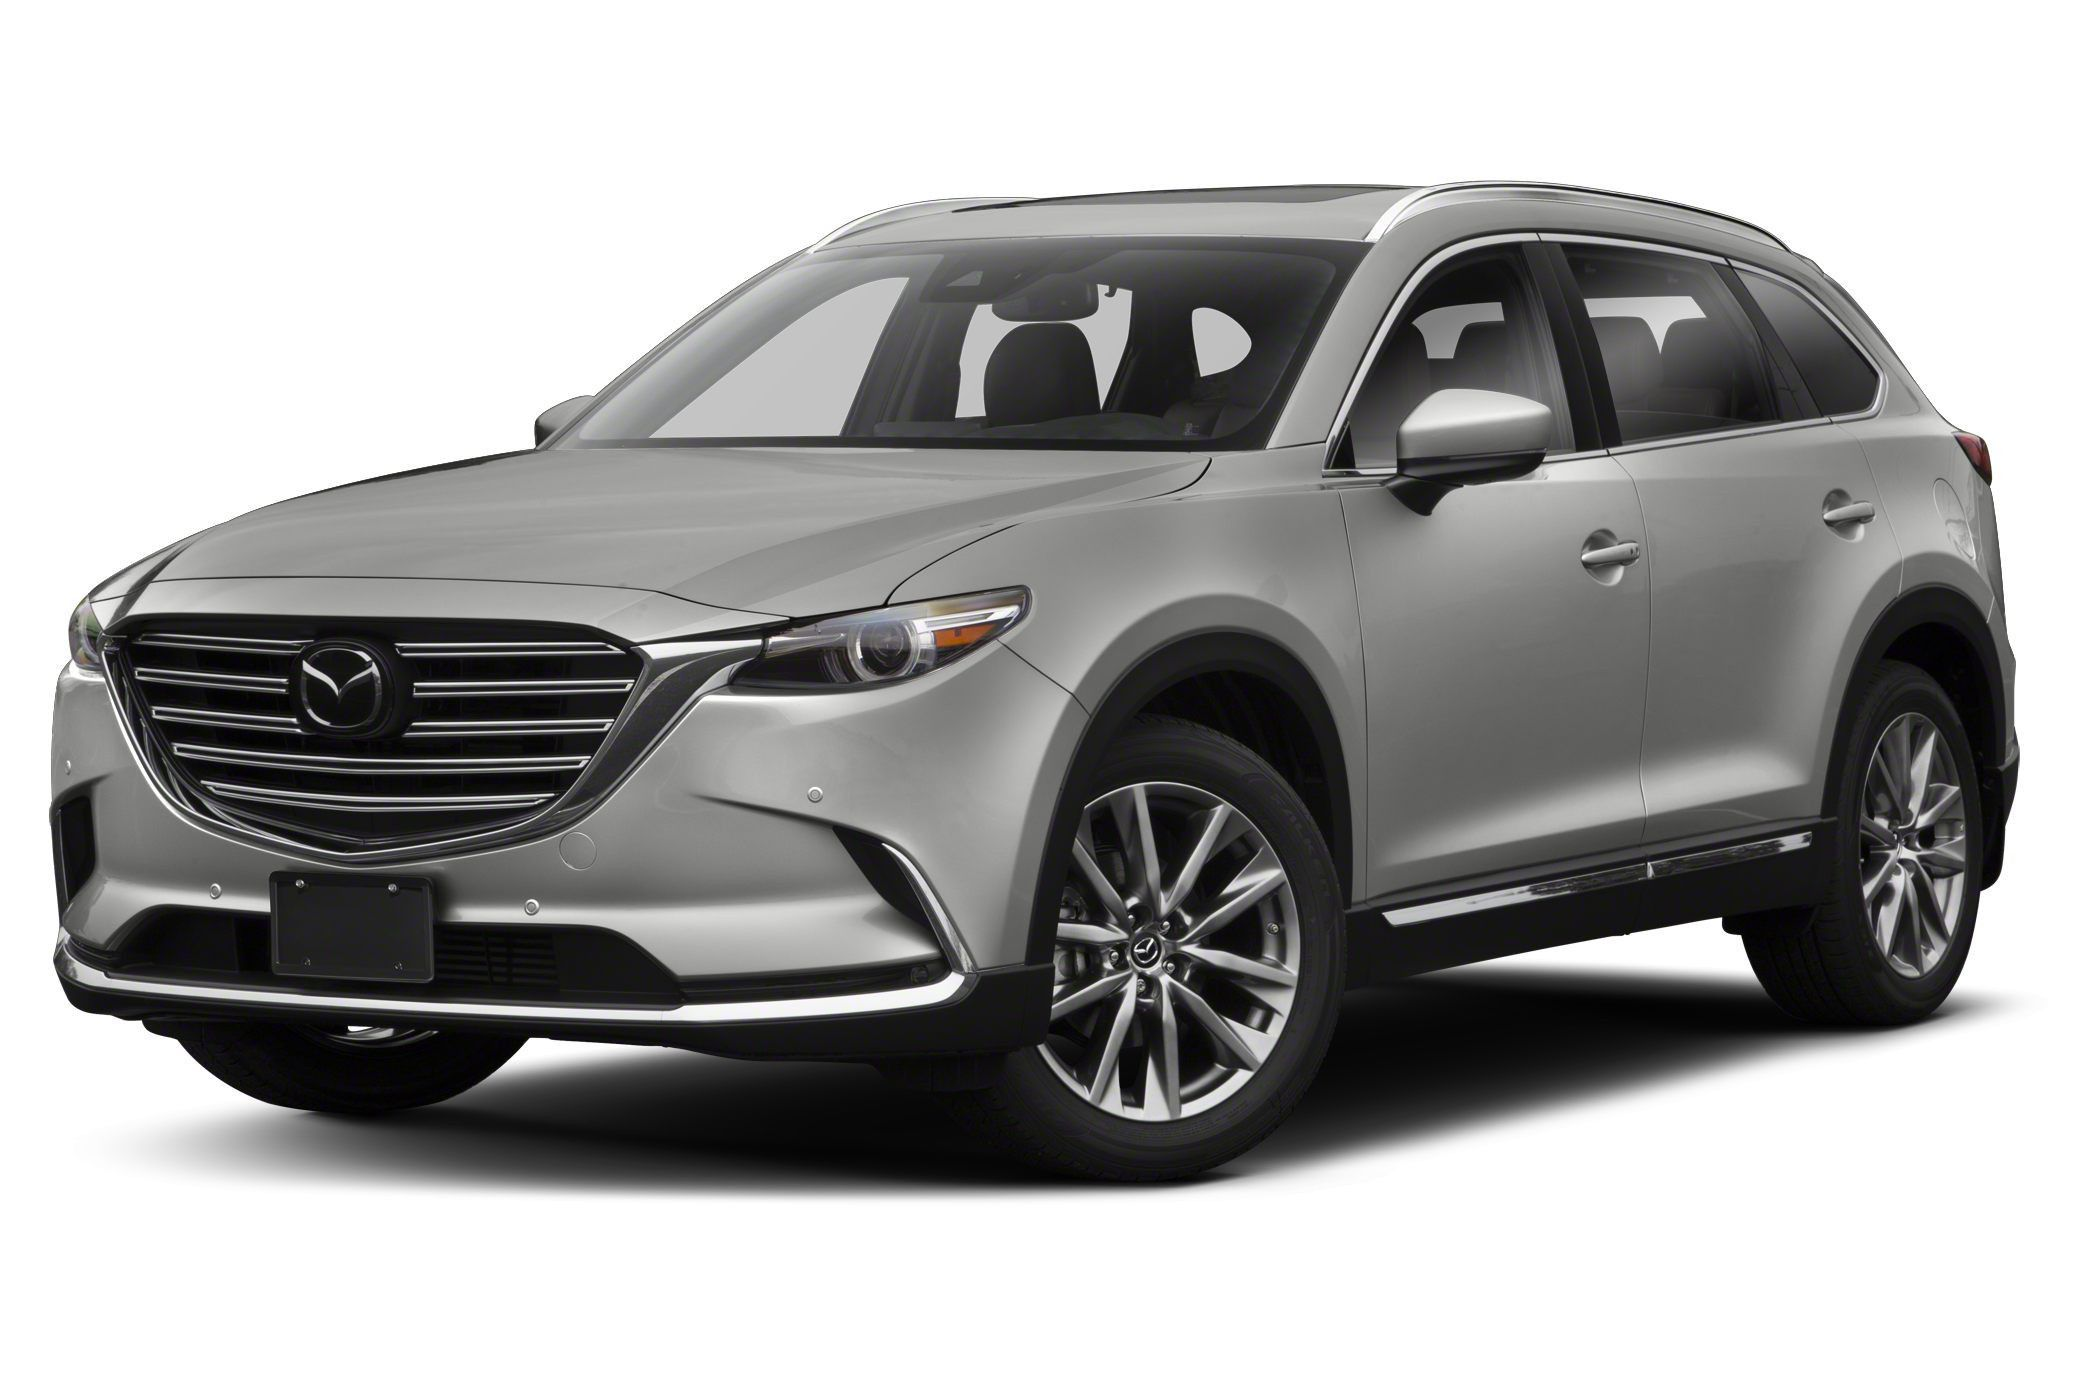 2020 Mazda Cx 9 2020 Mazda Cx 9 Mazda Cx 5 2020 Release Date And Mazda Mazda Cx 9 Best New Cars